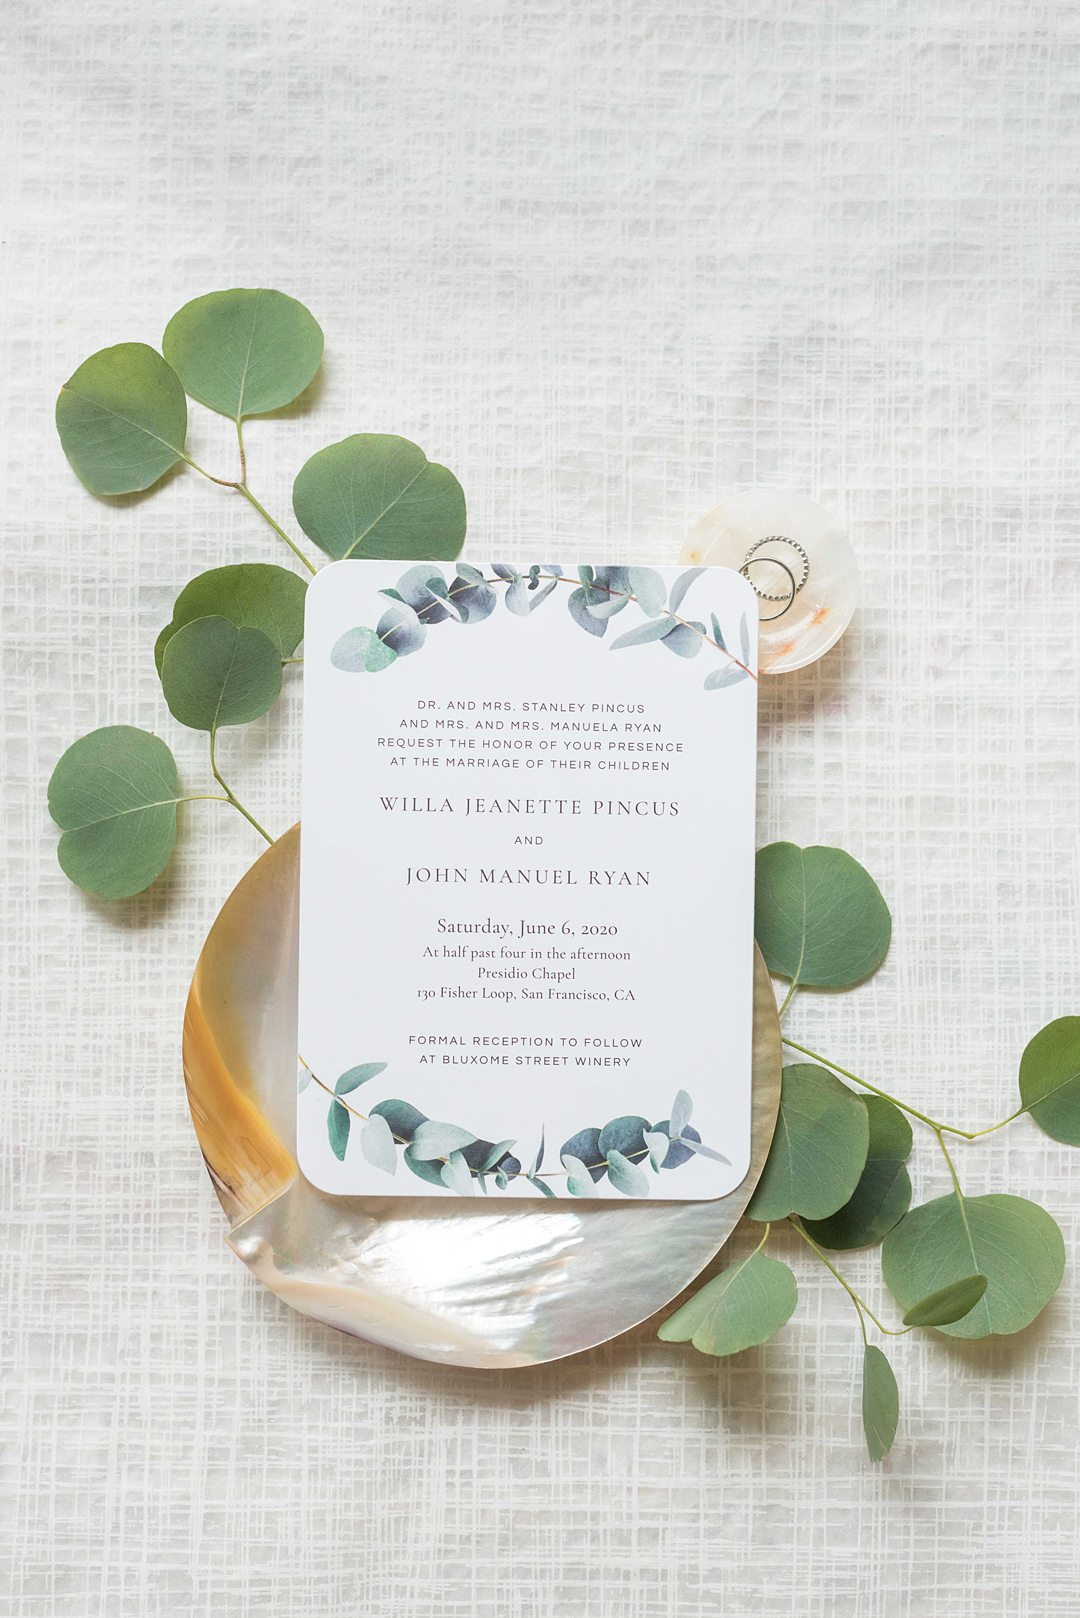 Save the Date stationery offered by Zola photographed by Mikkel Paige Photography.